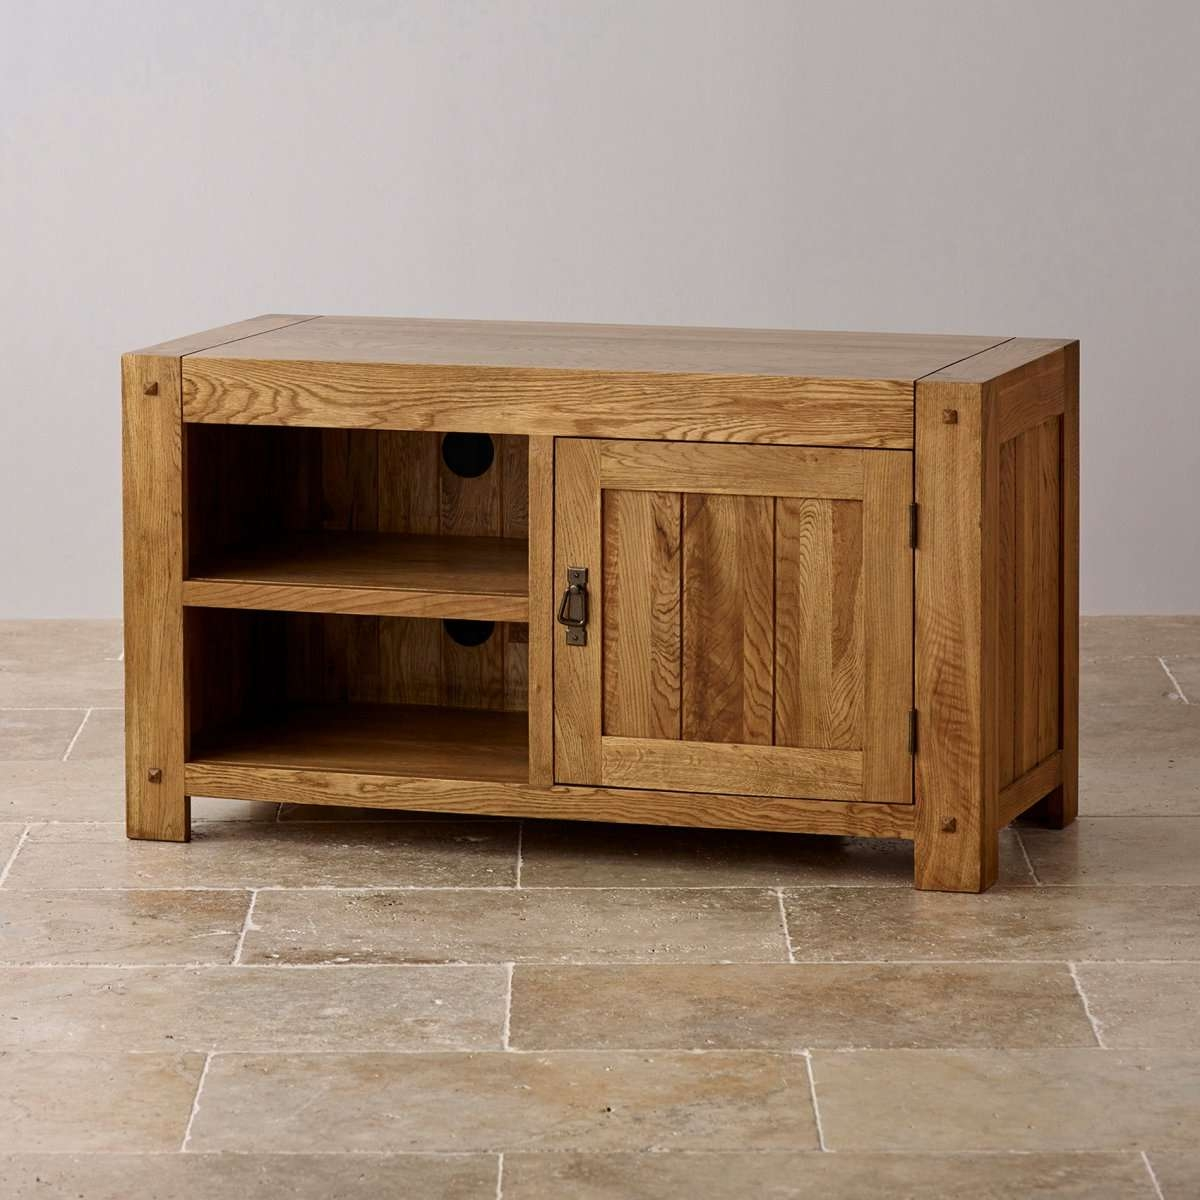 Bare Wood Tv Stand : Innovative Designs Oak Tv Console – Marku For Hardwood Tv Stands (View 12 of 15)